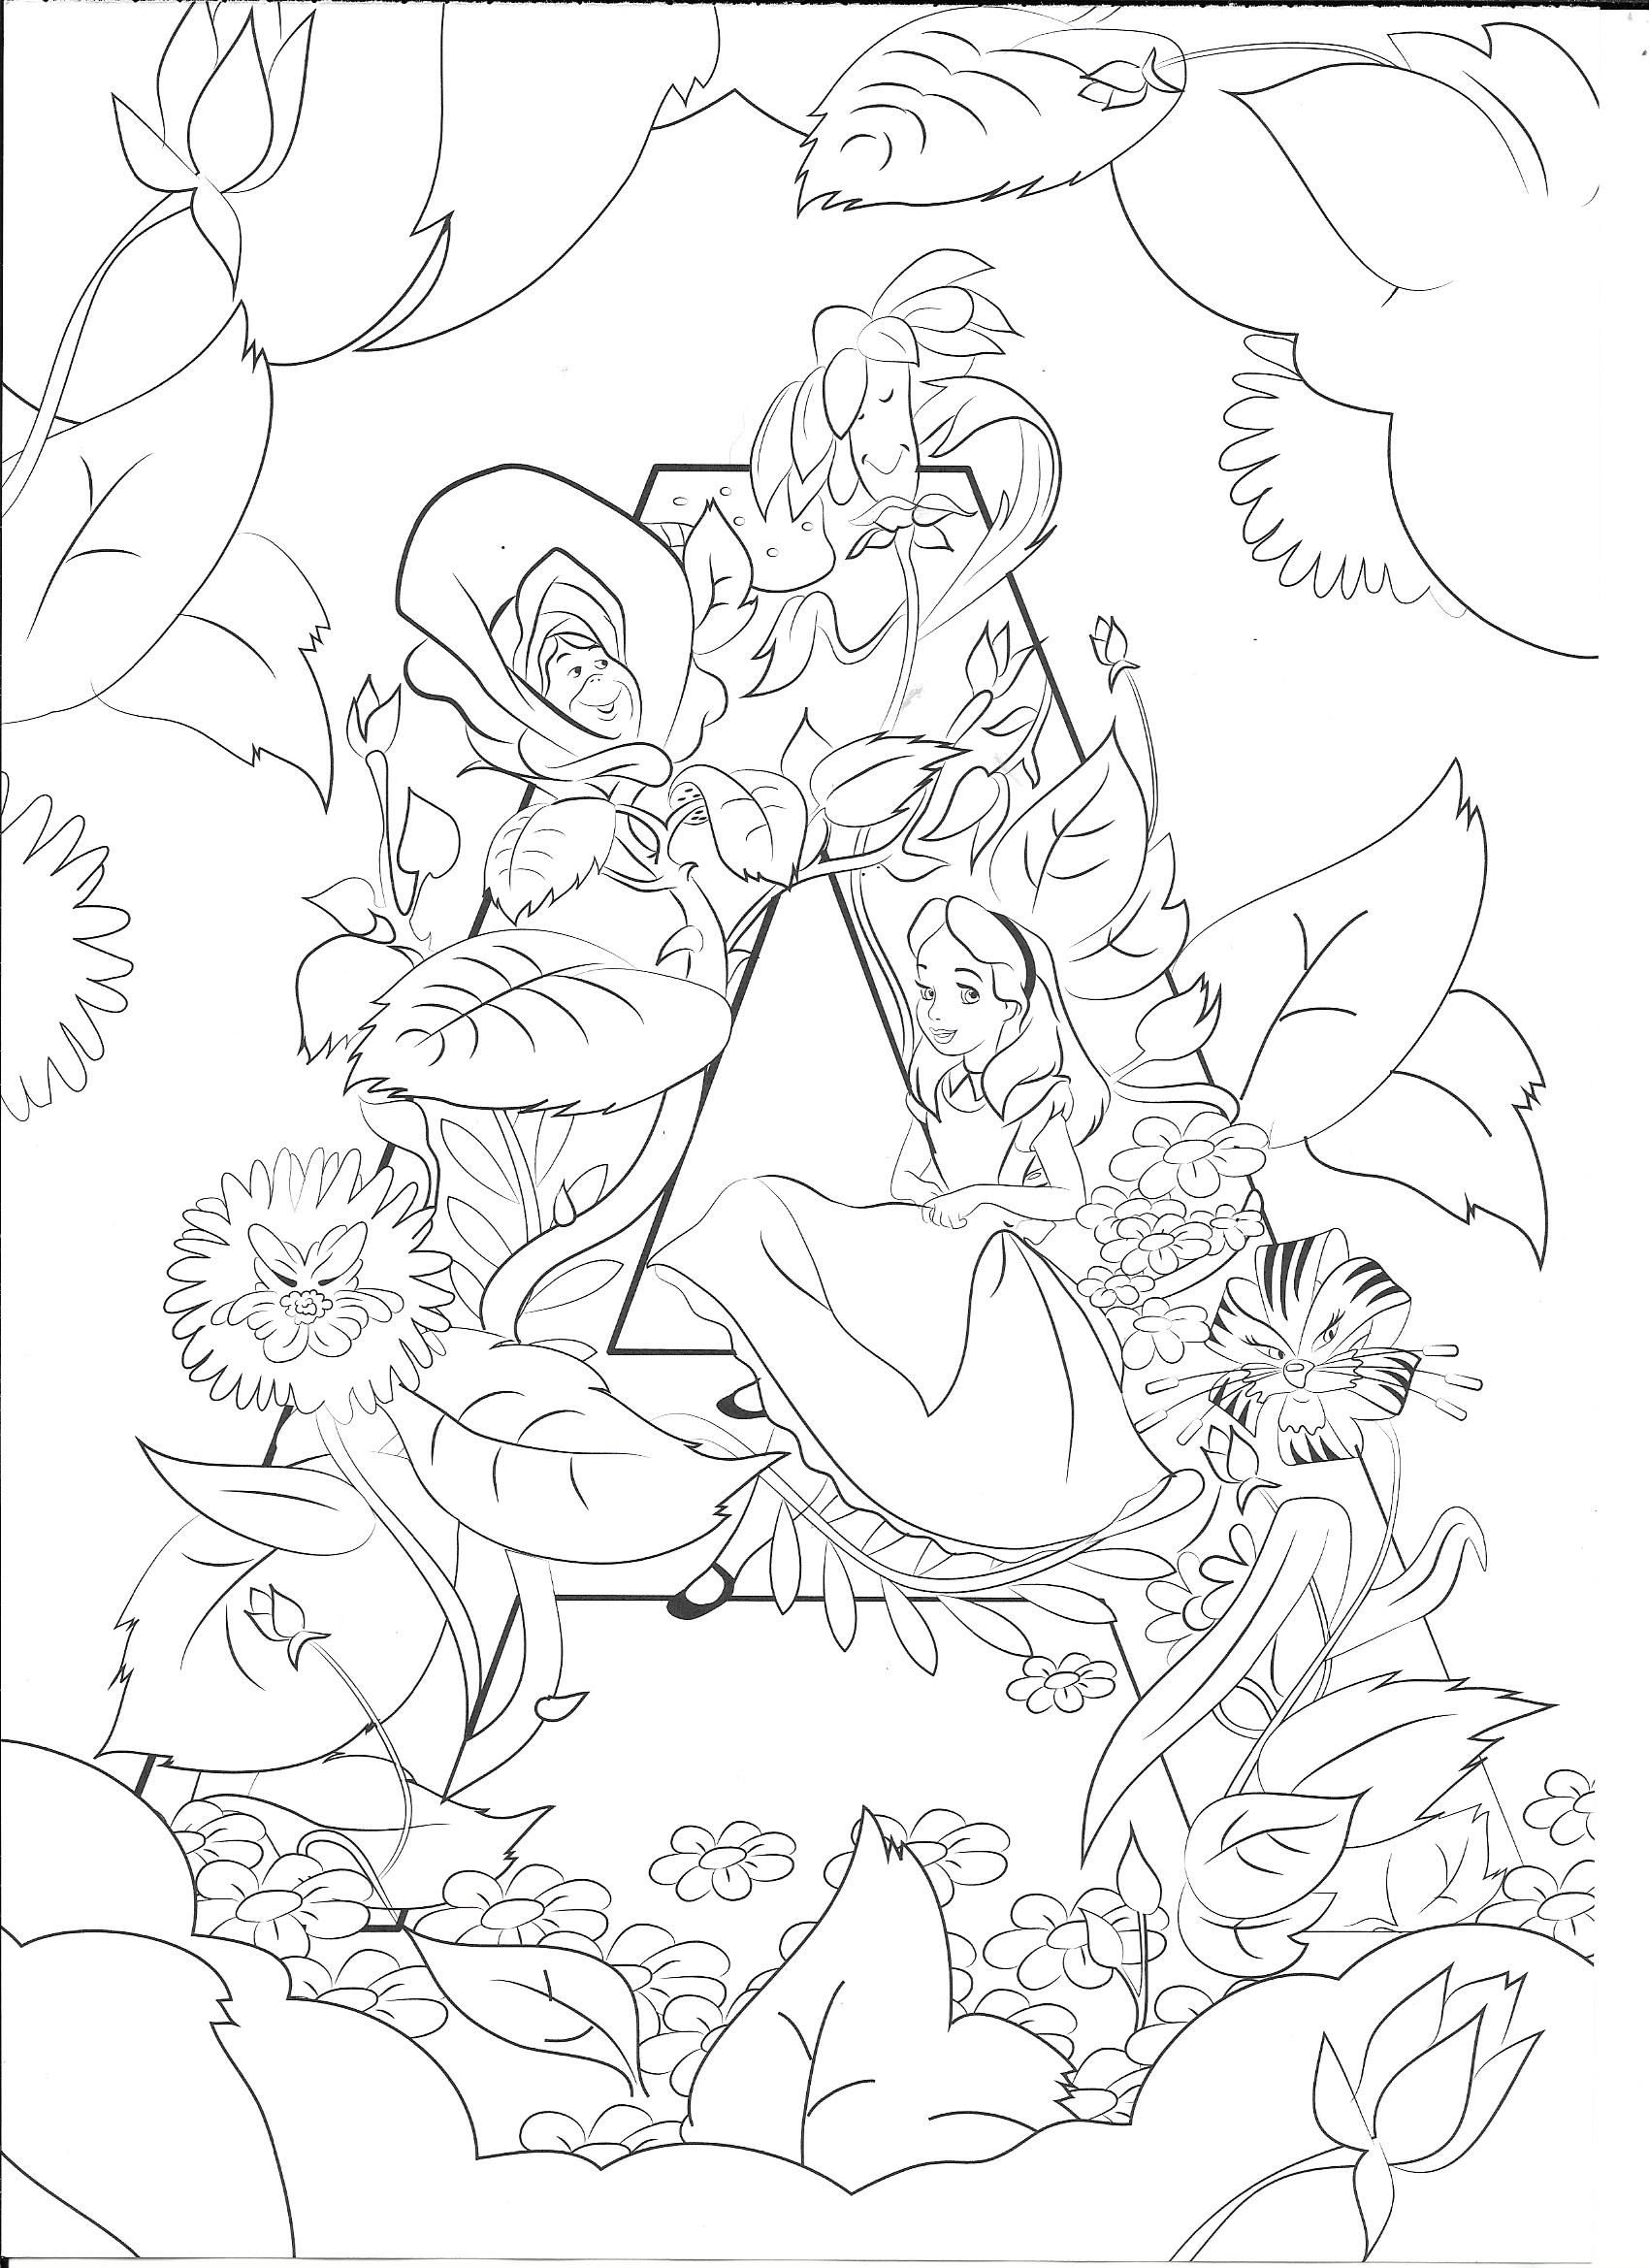 Pin by Anastasia Winchester on Alice | Disney coloring ...